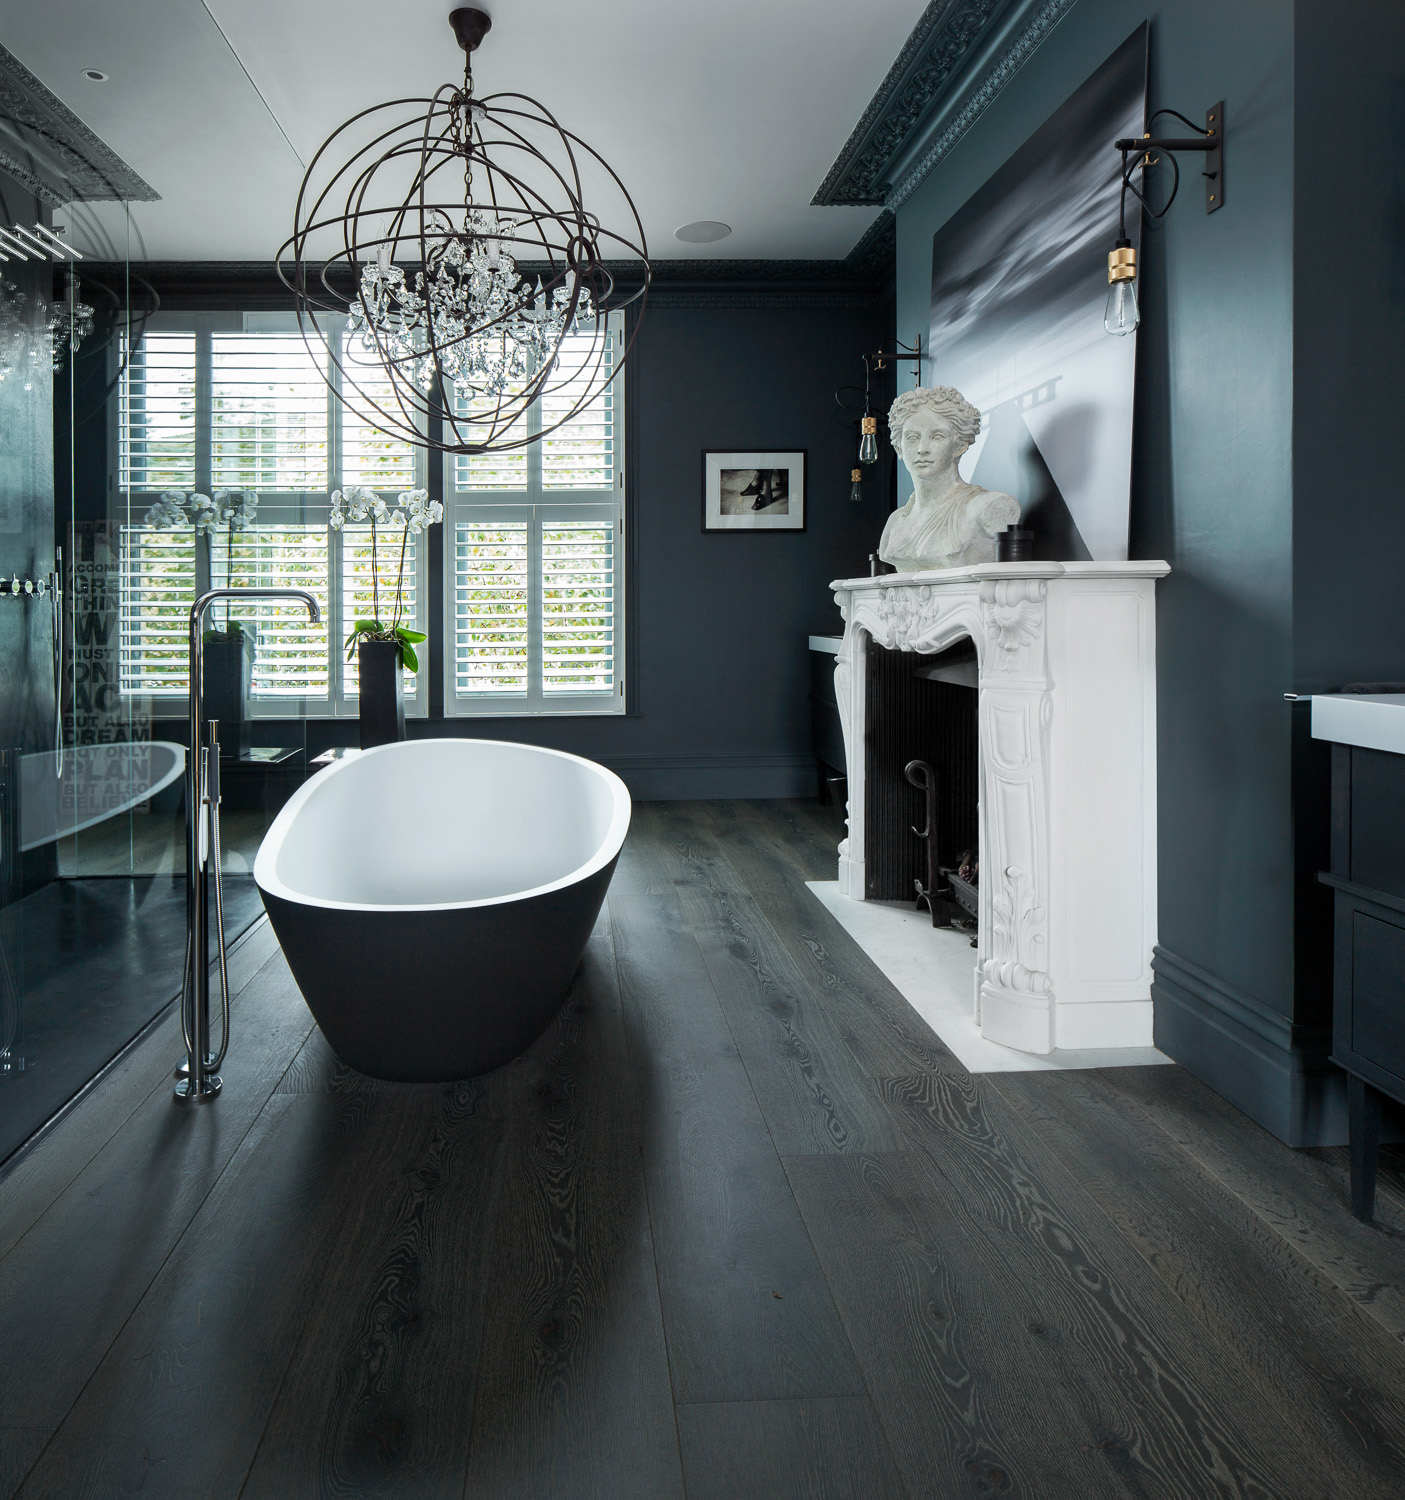 15 Bathroom Design Ideas and Trends (2020) - The New ...